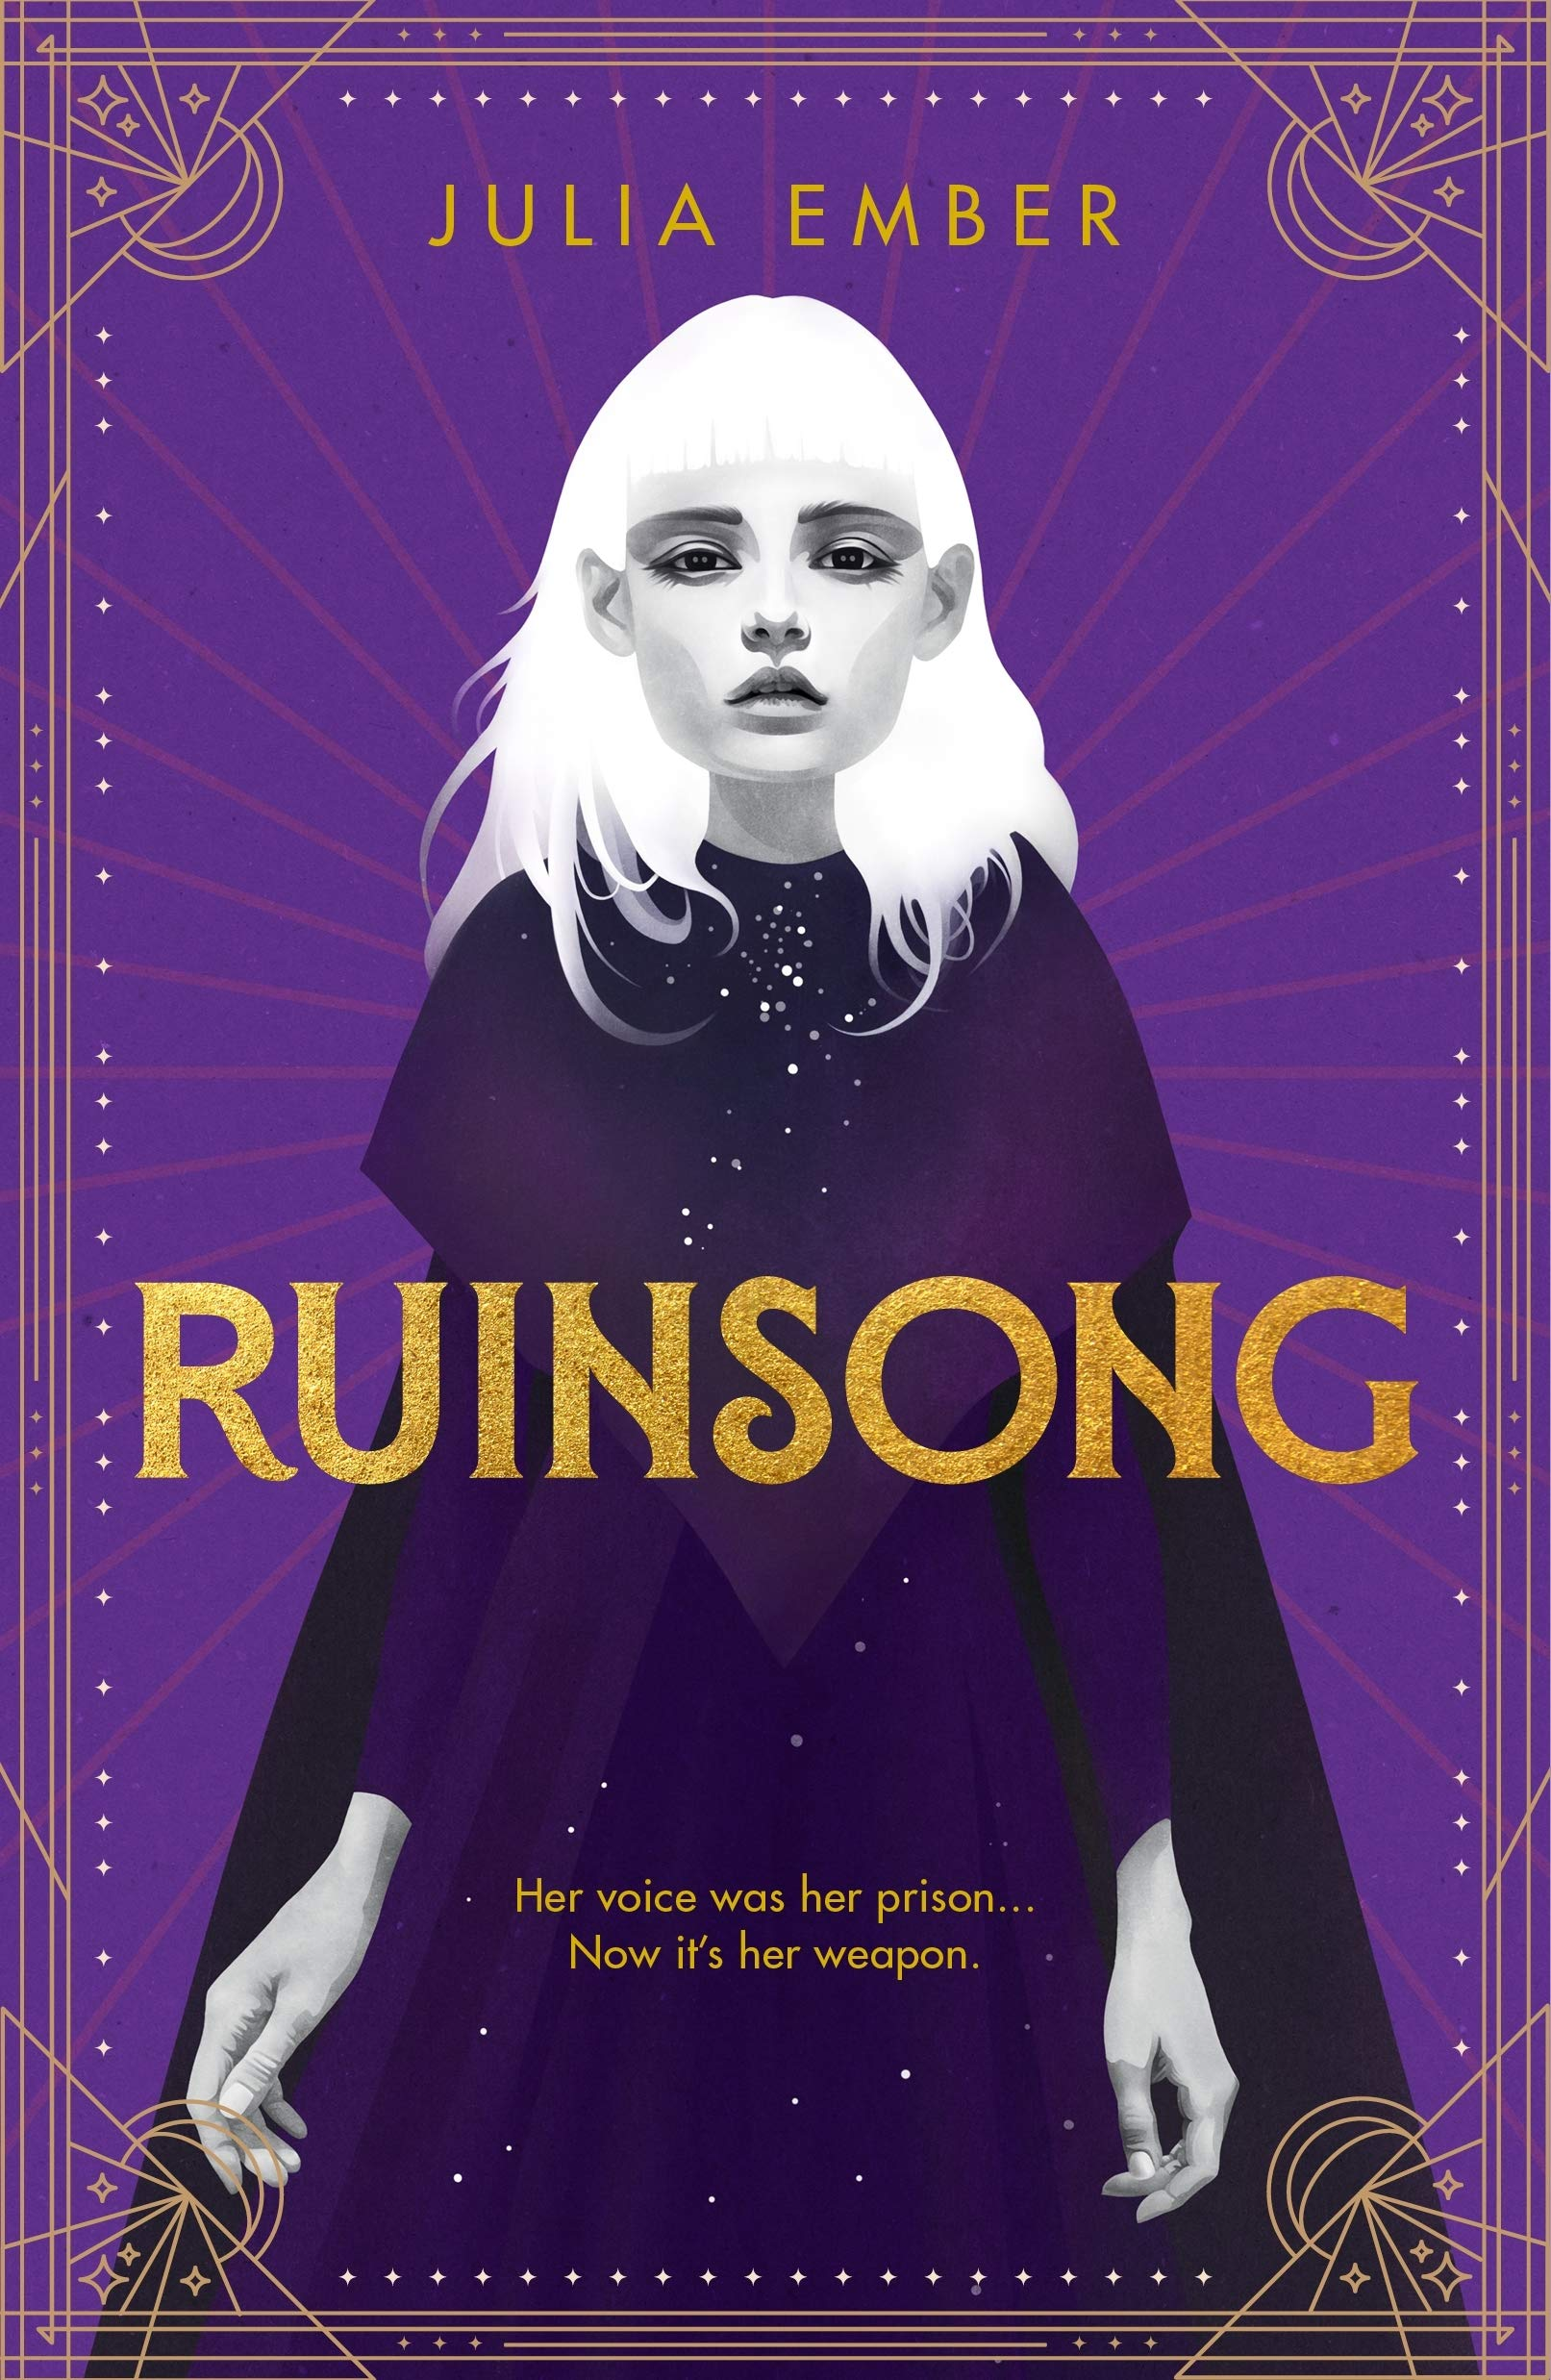 Amazon.com: Ruinsong (9780374313357): Ember, Julia: Books